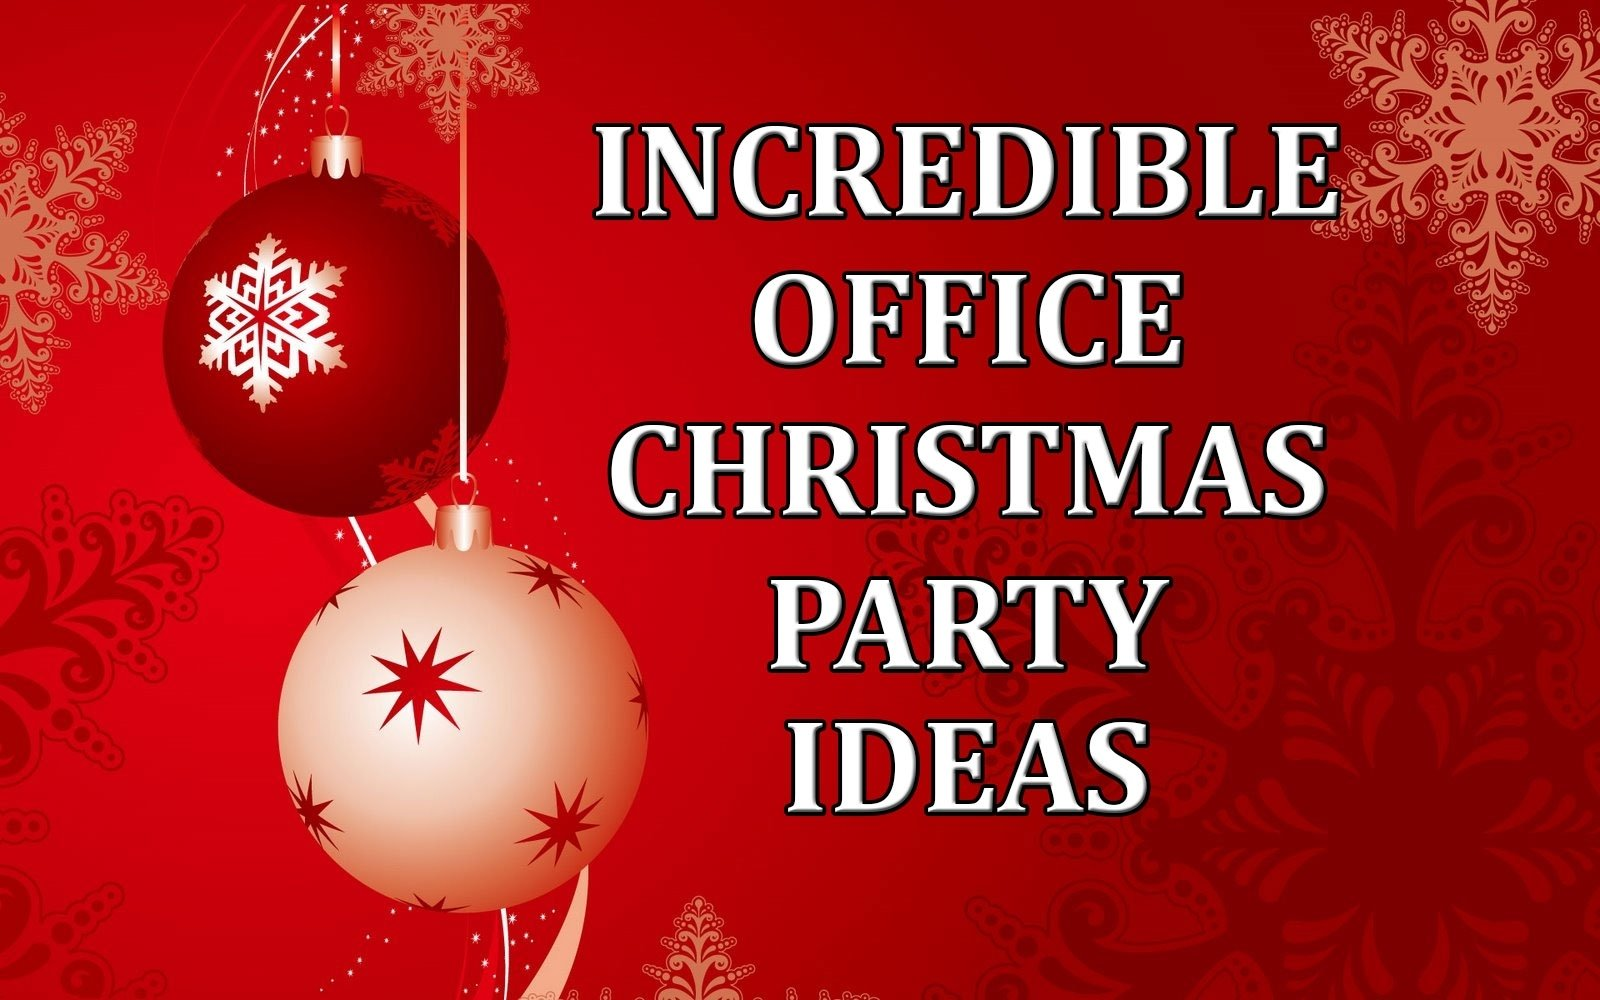 10 Stylish Corporate Christmas Party Entertainment Ideas incredible office christmas party ideas comedy ventriloquist 2020